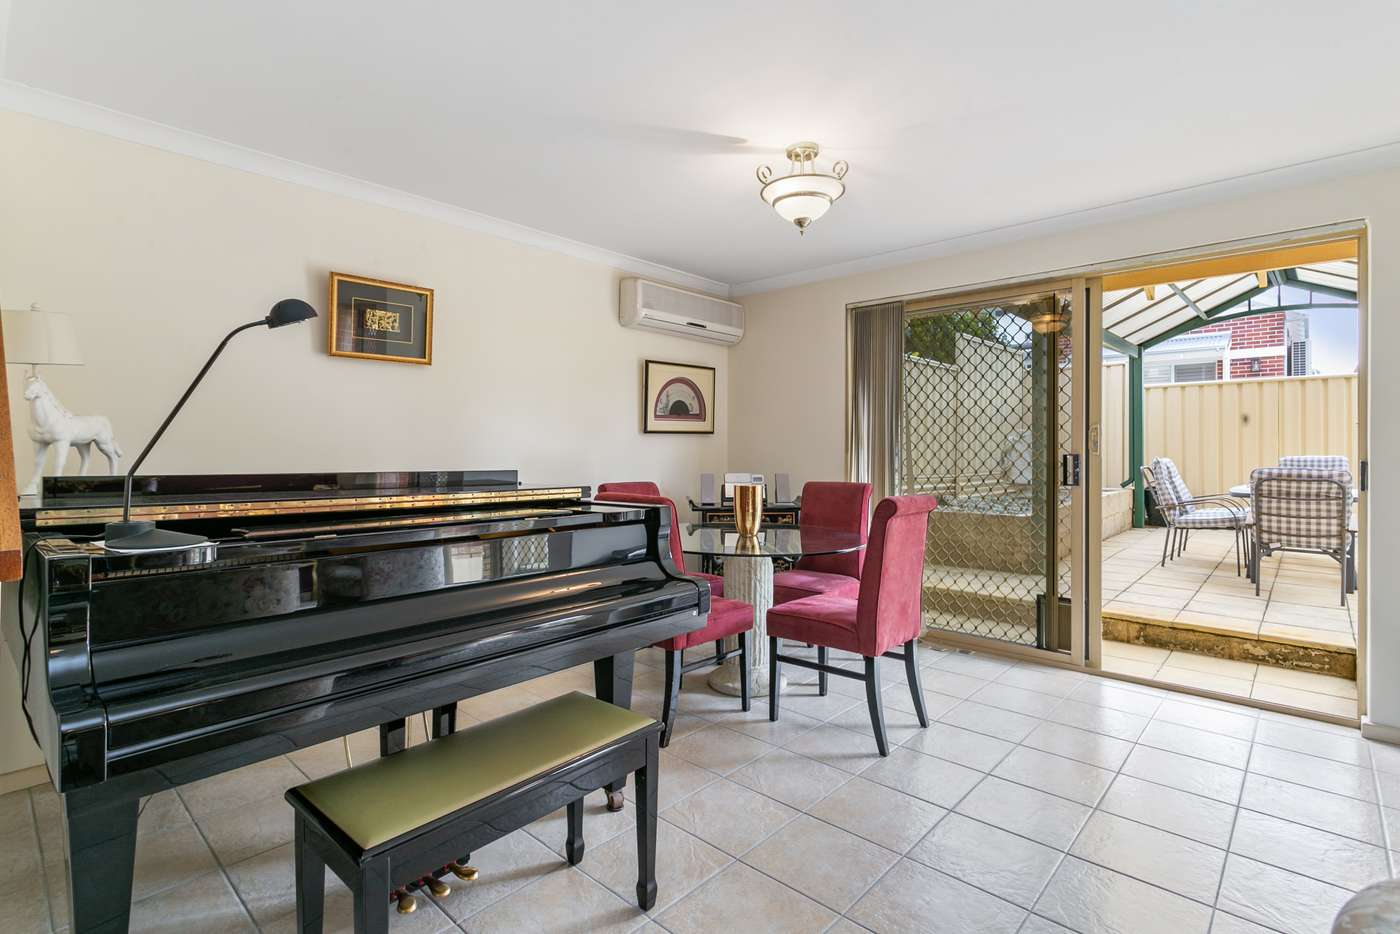 Seventh view of Homely house listing, 7/64 First Avenue, Mount Lawley WA 6050